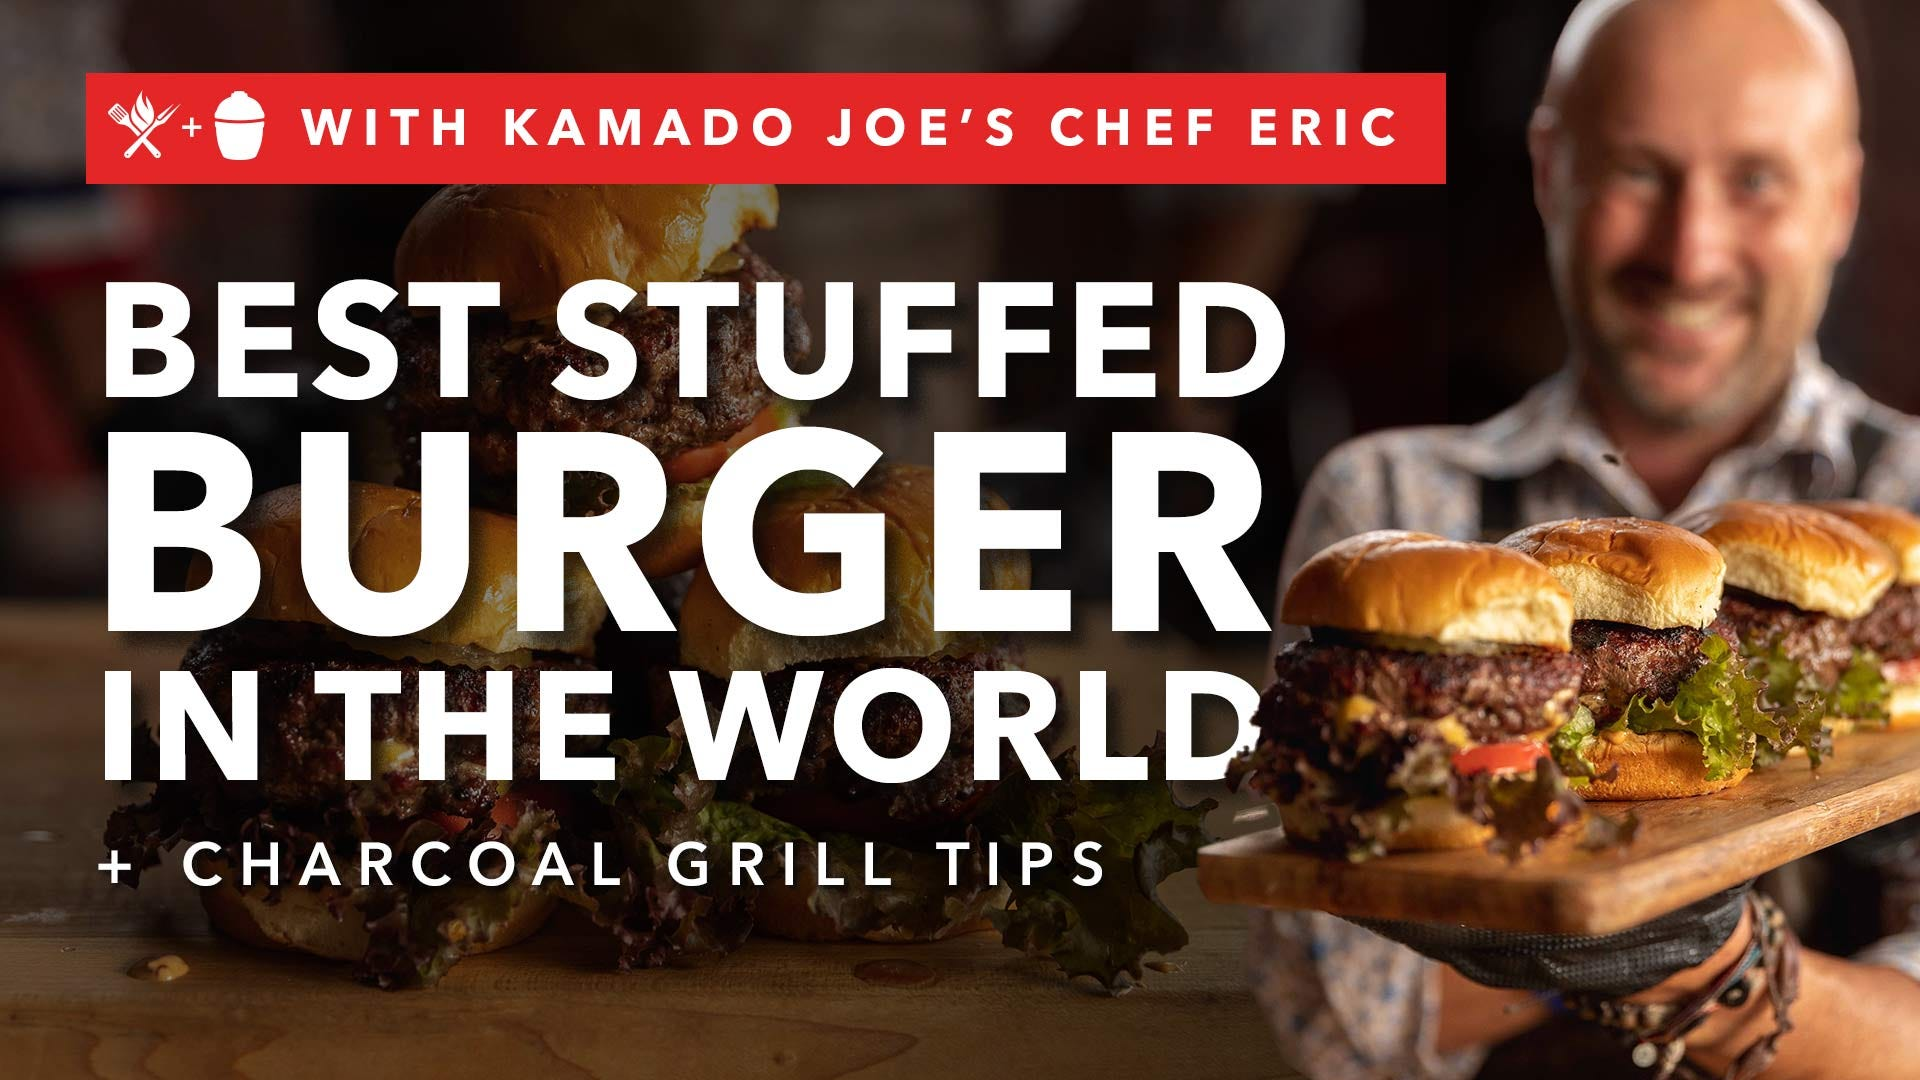 Juicy Lucy, or the Best Stuffed Burger in the World + Charcoal Grill Tips